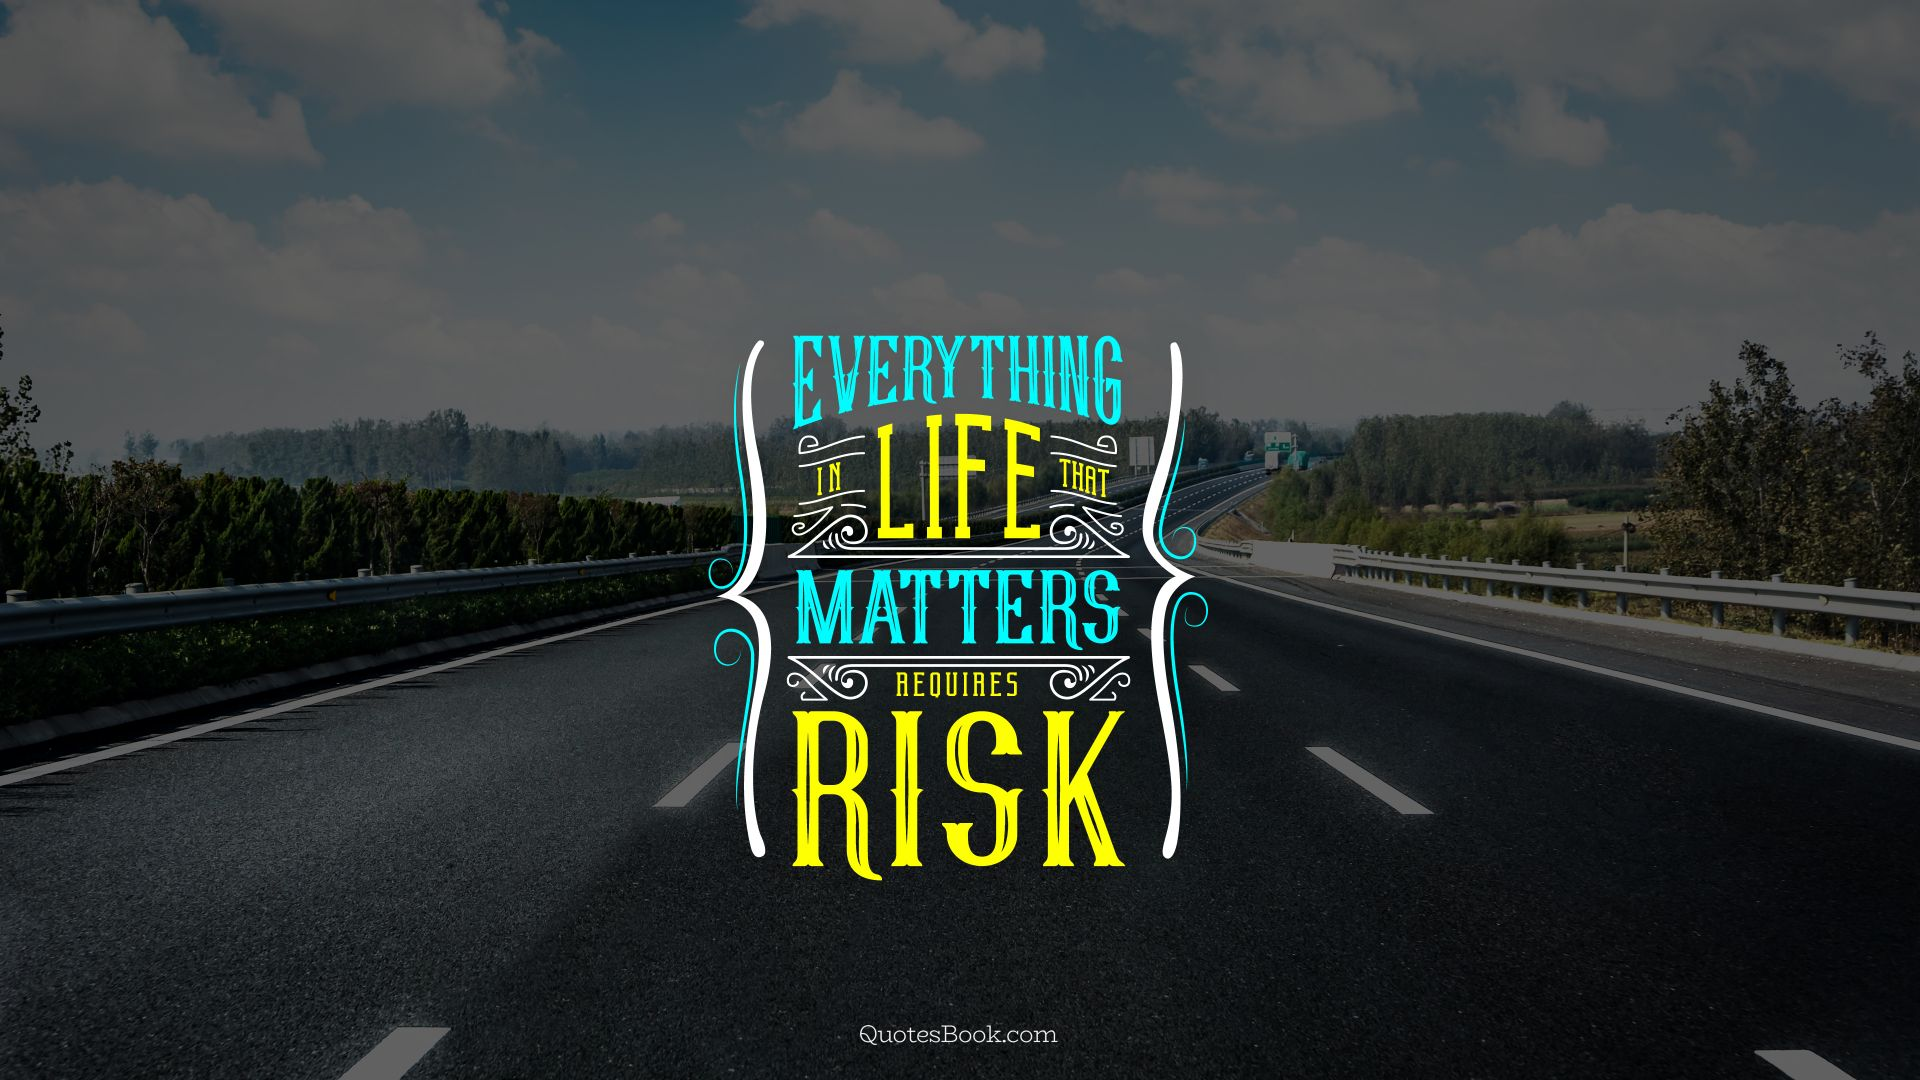 Everything in life that matters requires risk